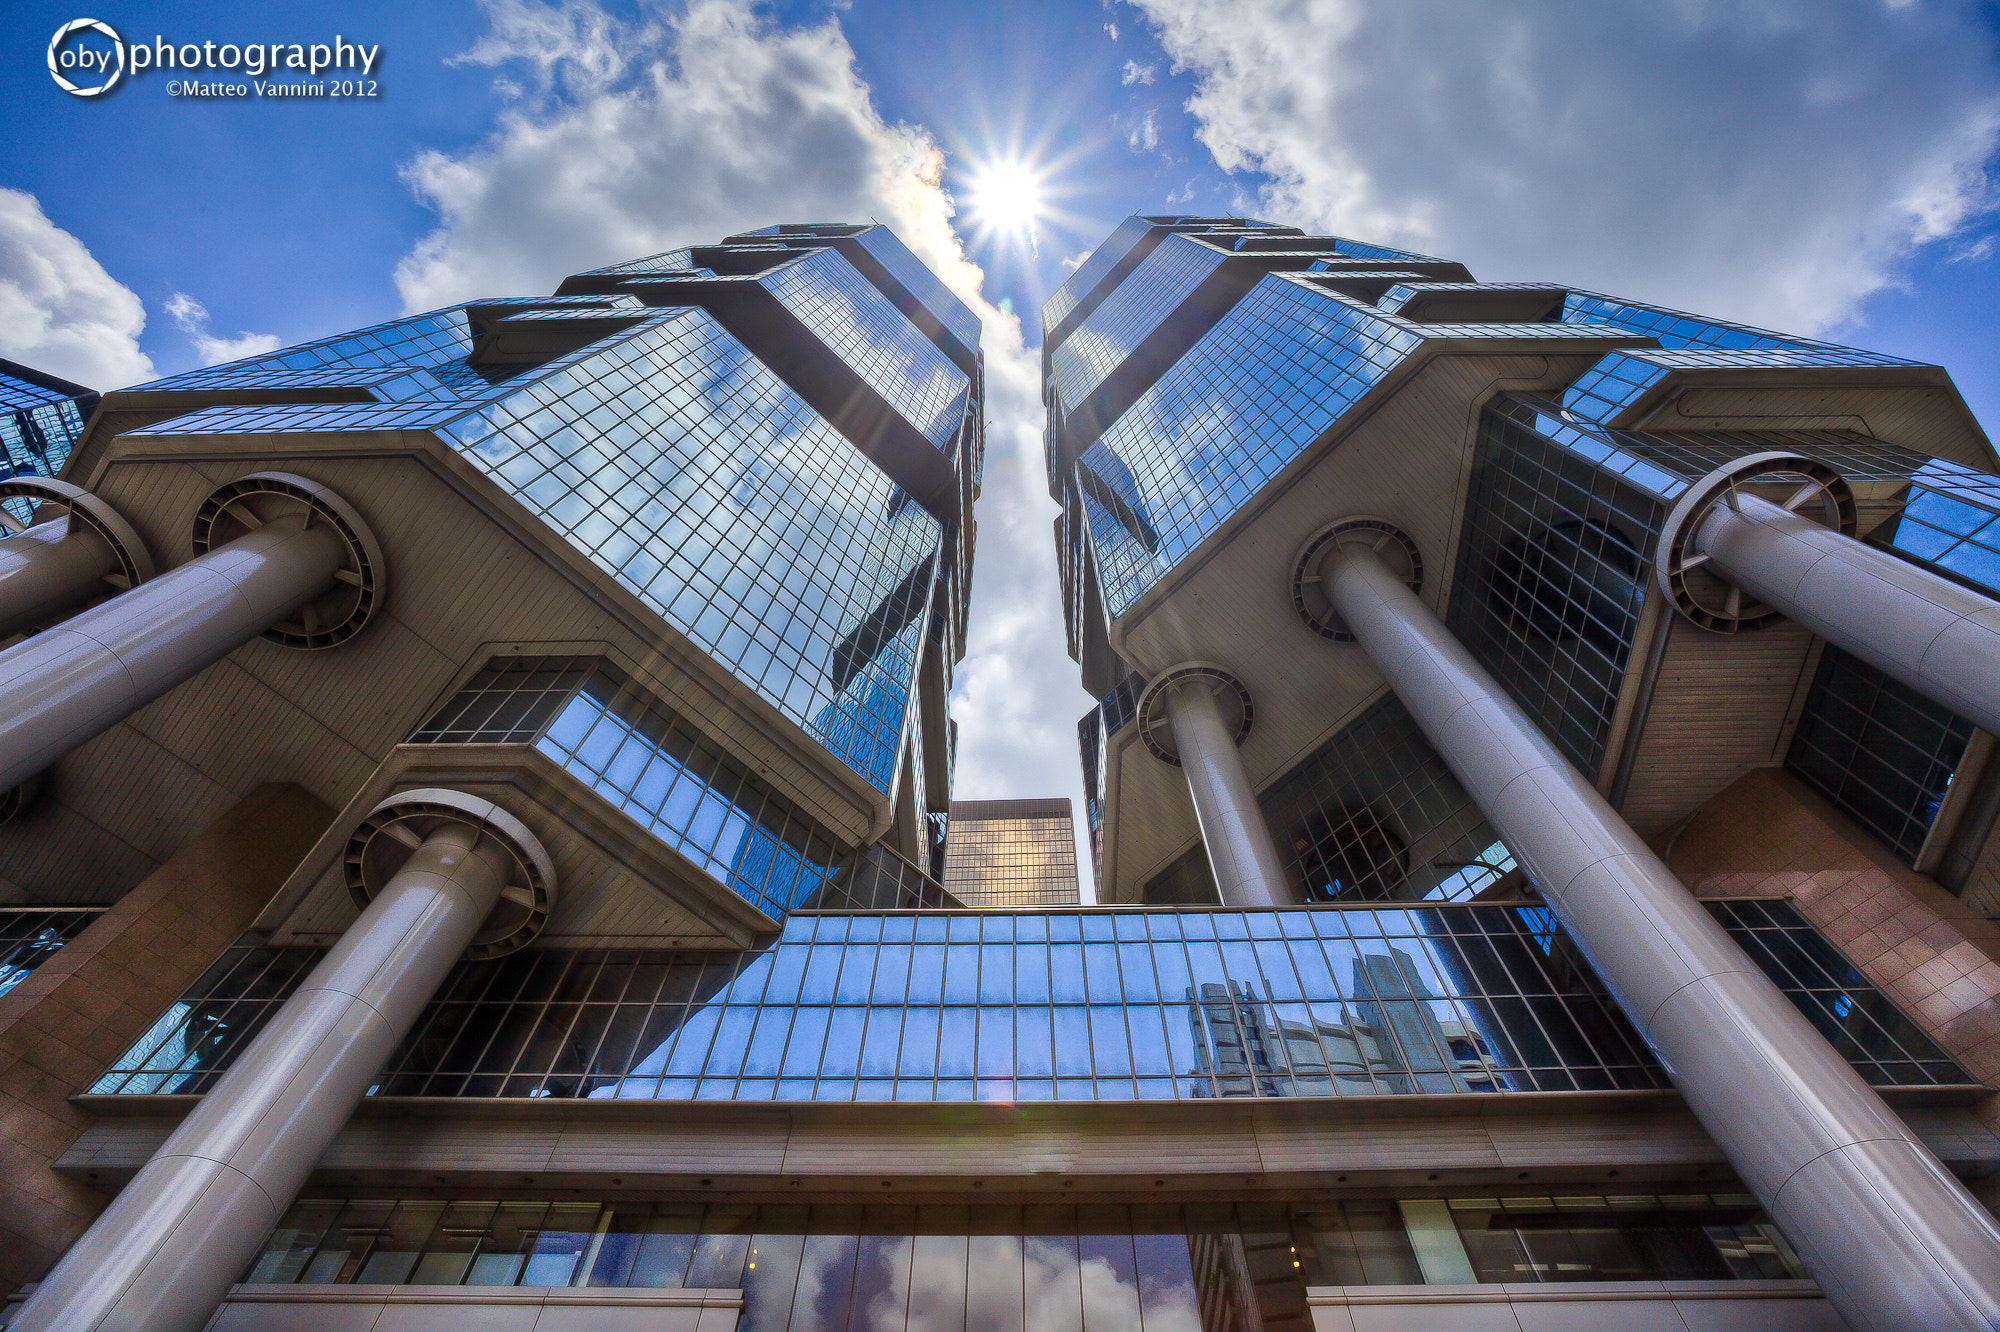 Photograph Lippo Center - Admiralty - Hong Kong by Matteo Vannini on 500px